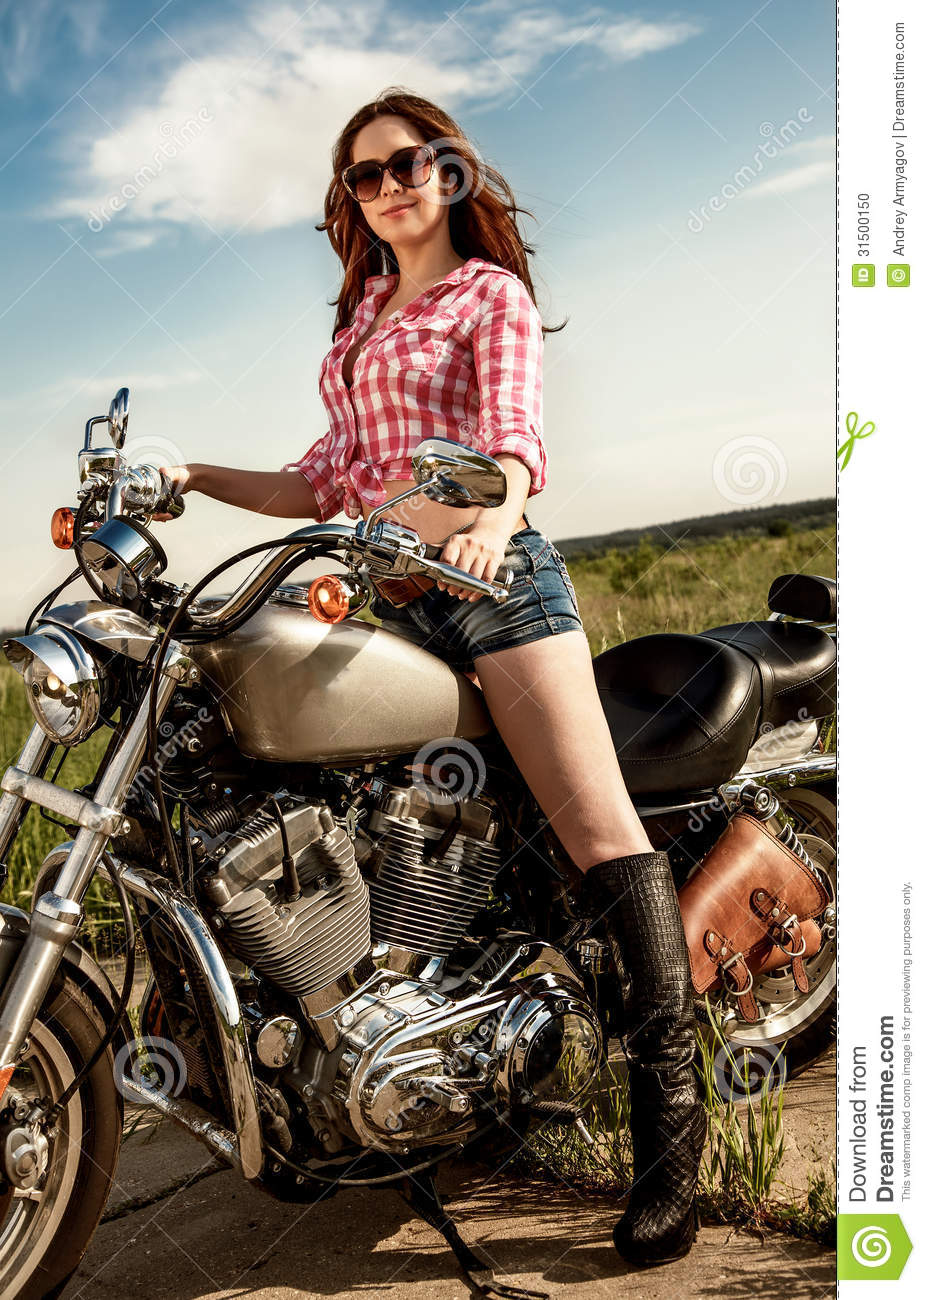 biker babes on motorcycle